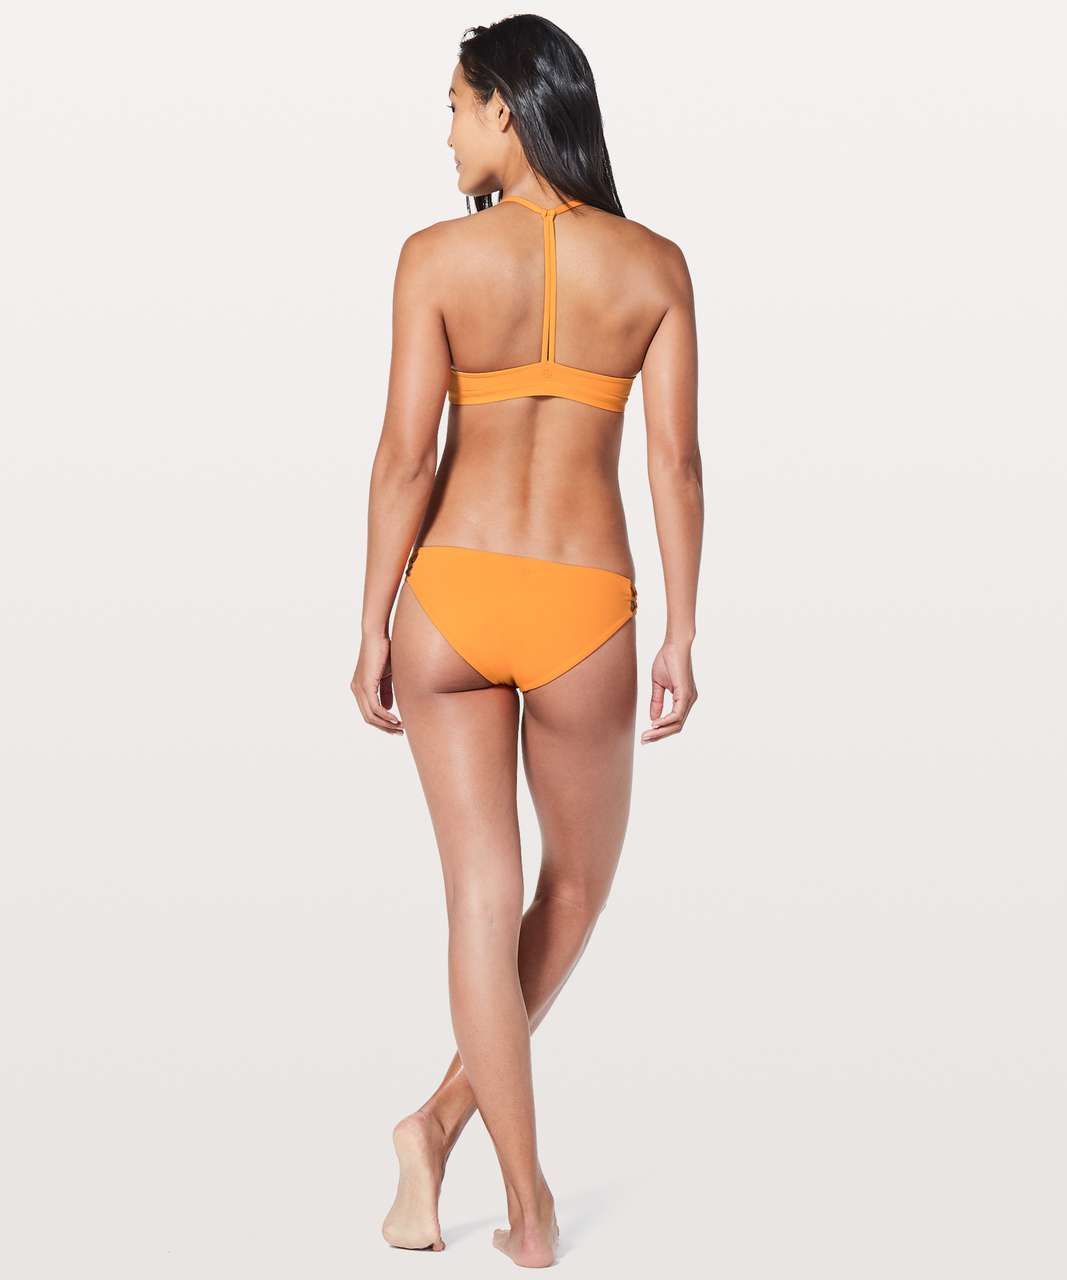 dd753945e Lululemon Deep Sea Top - Vivid Amber - lulu fanatics